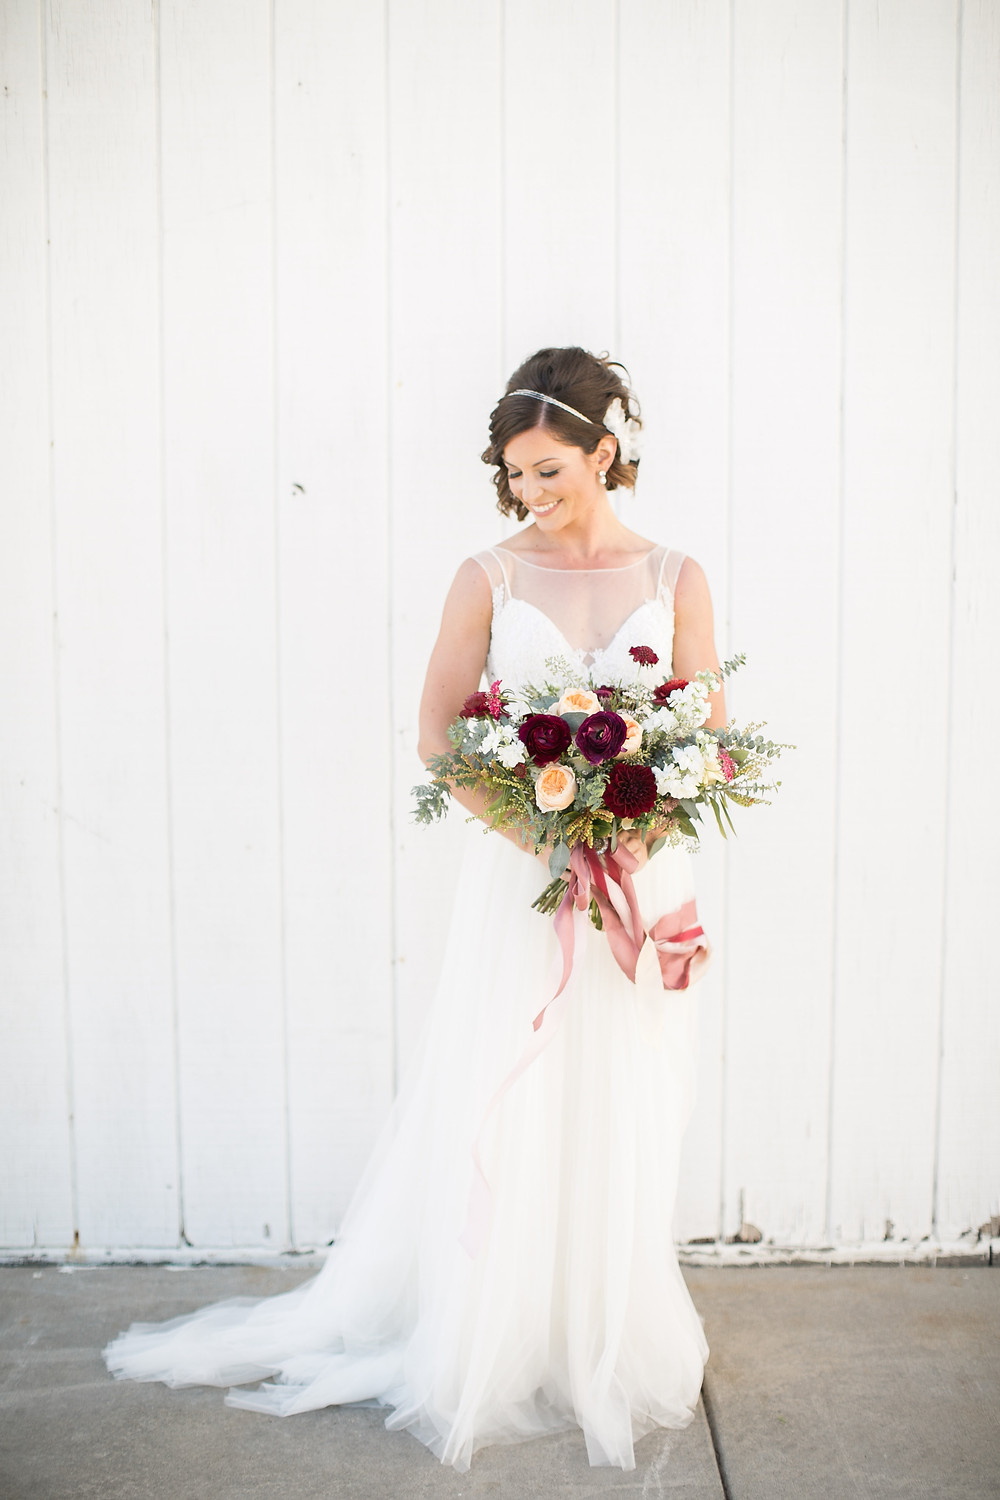 bride holding wedding bouquet by studio bloom iowa of juliet roses, ranunculus, dahlias, and eucalyptus on white barn wall